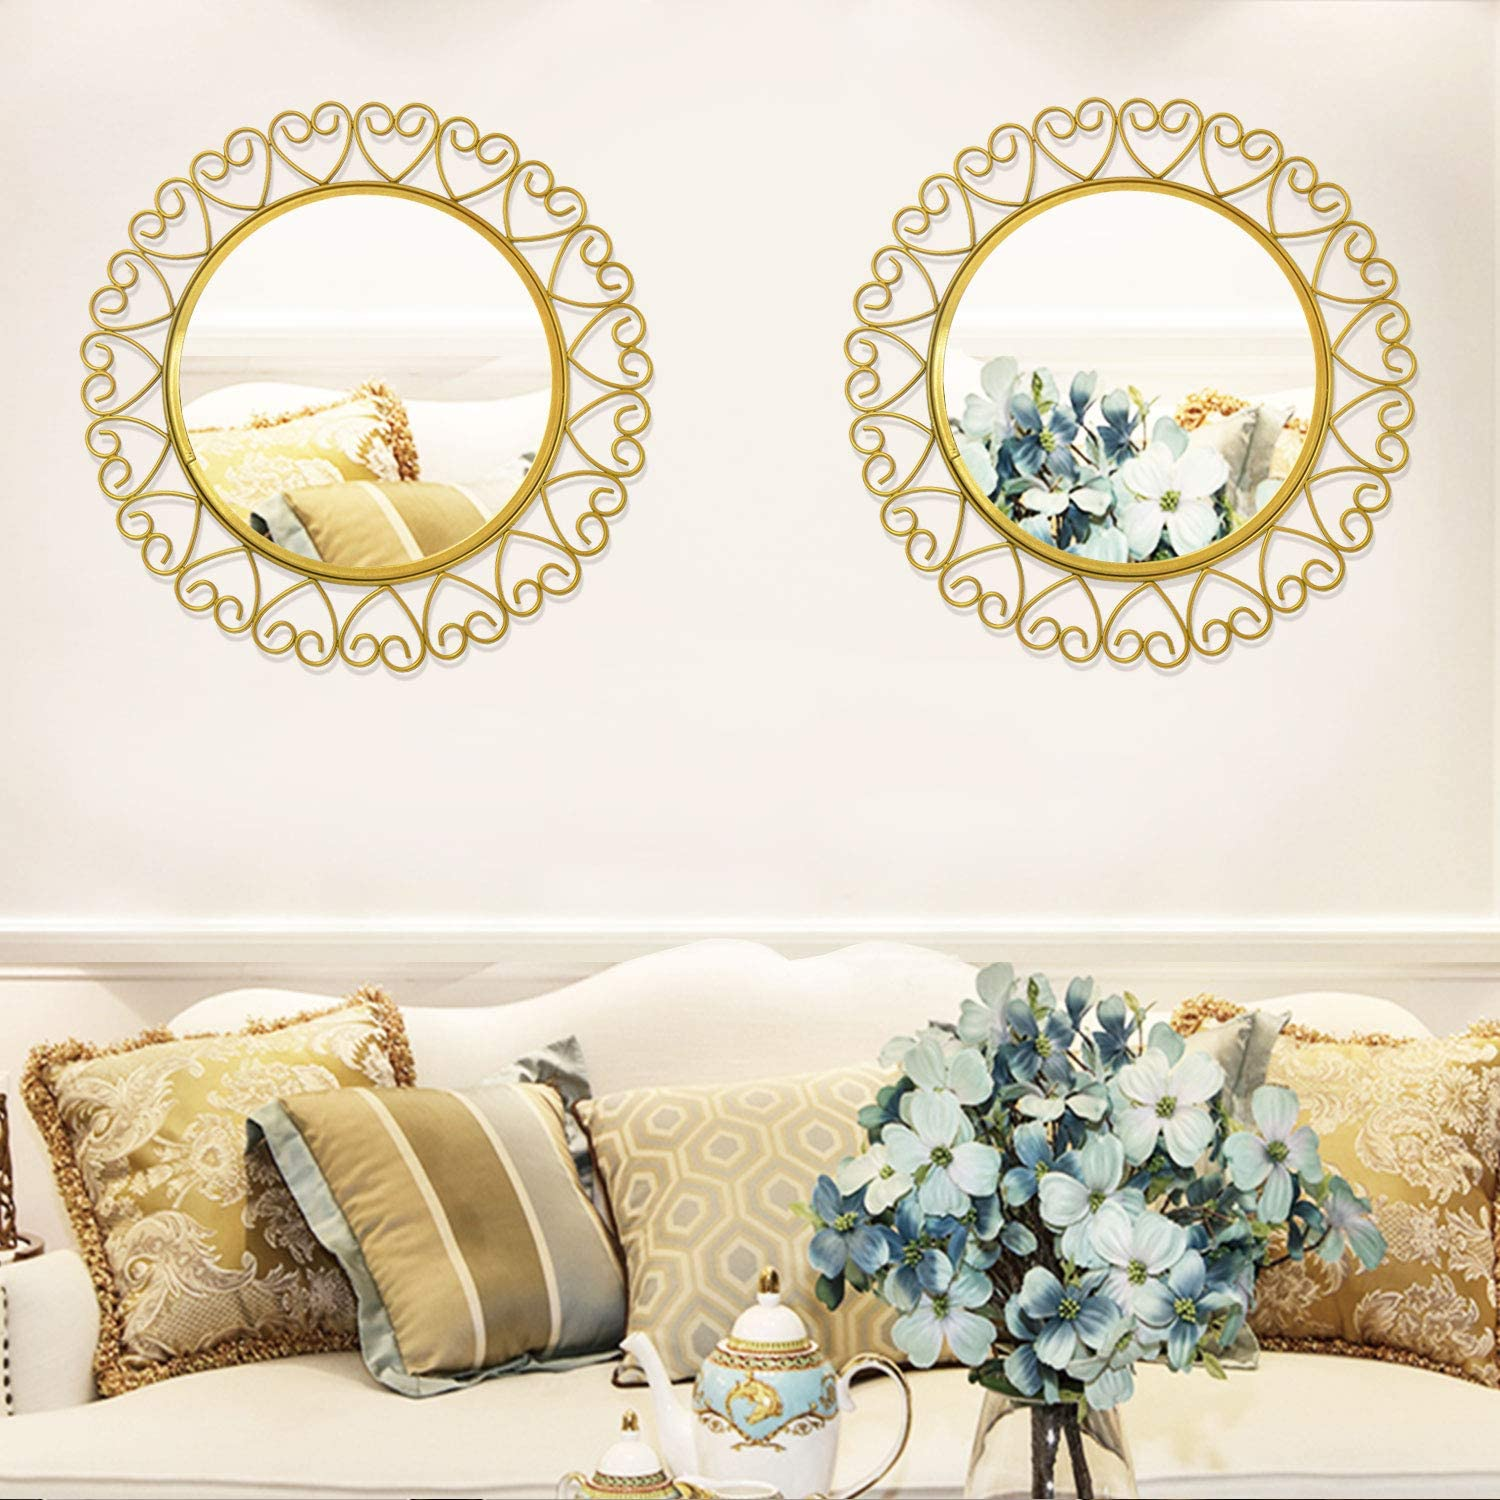 2 Pack Metal Decorative Wall Mirrors Modern Gold Hanging Wall Décor Wall Art for Living Room Farmhouse Bathroom Kitchen